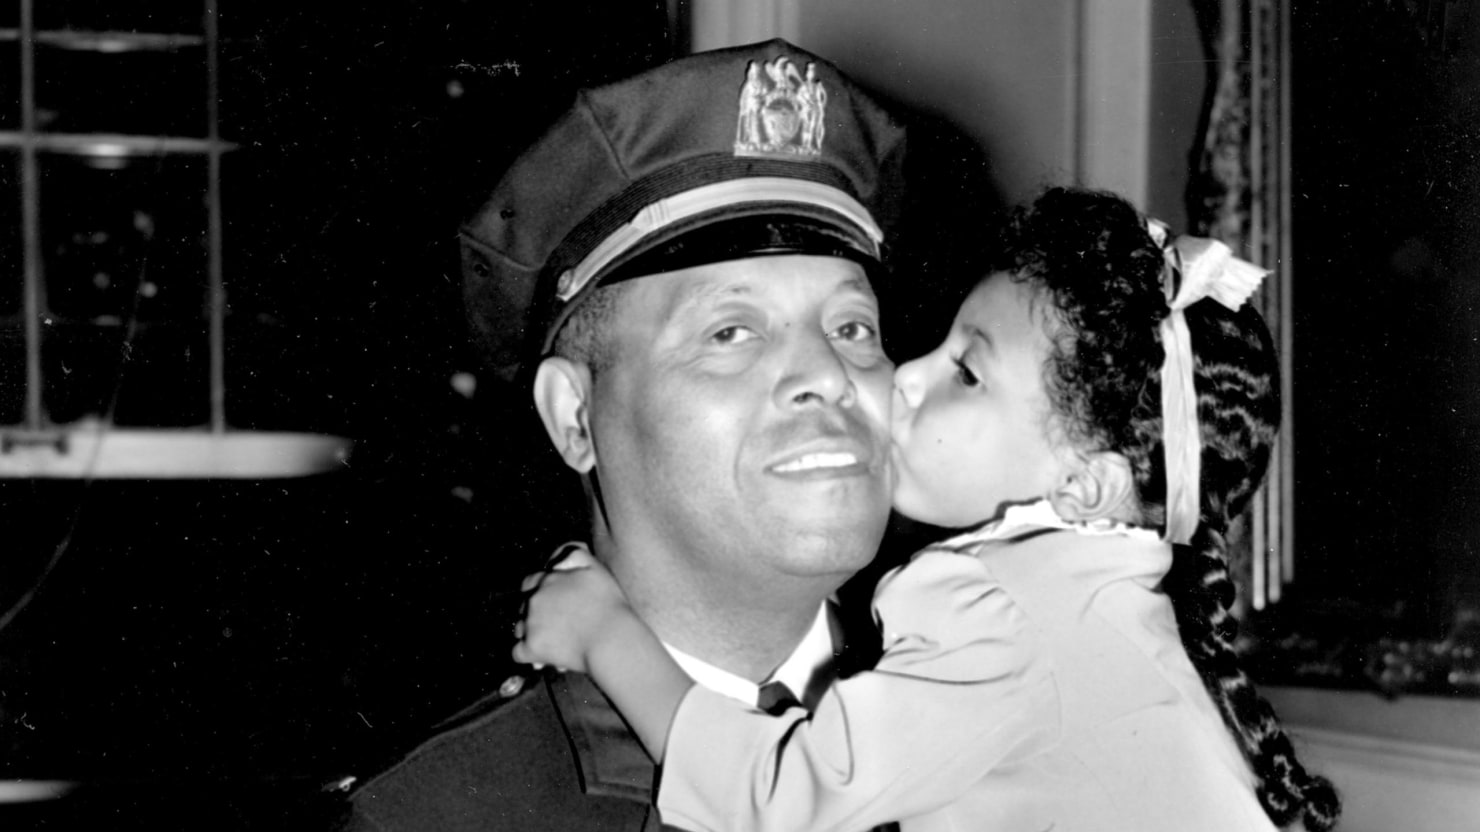 NYC's First Black Cop and a Boy's Racism